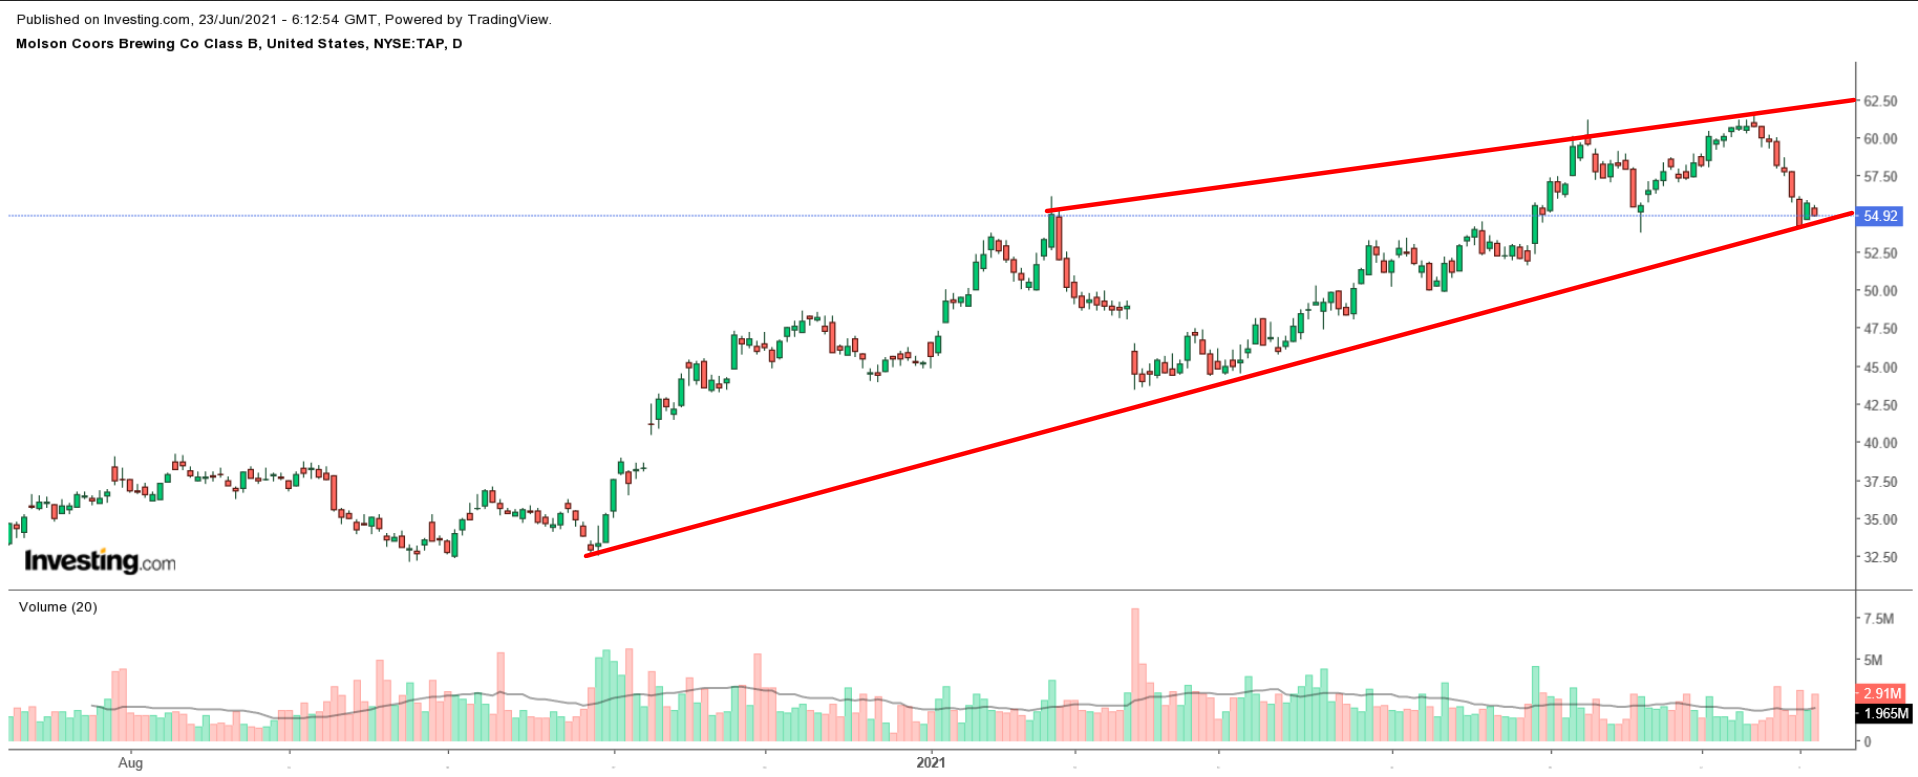 TAP (NYSE) Daily Chart